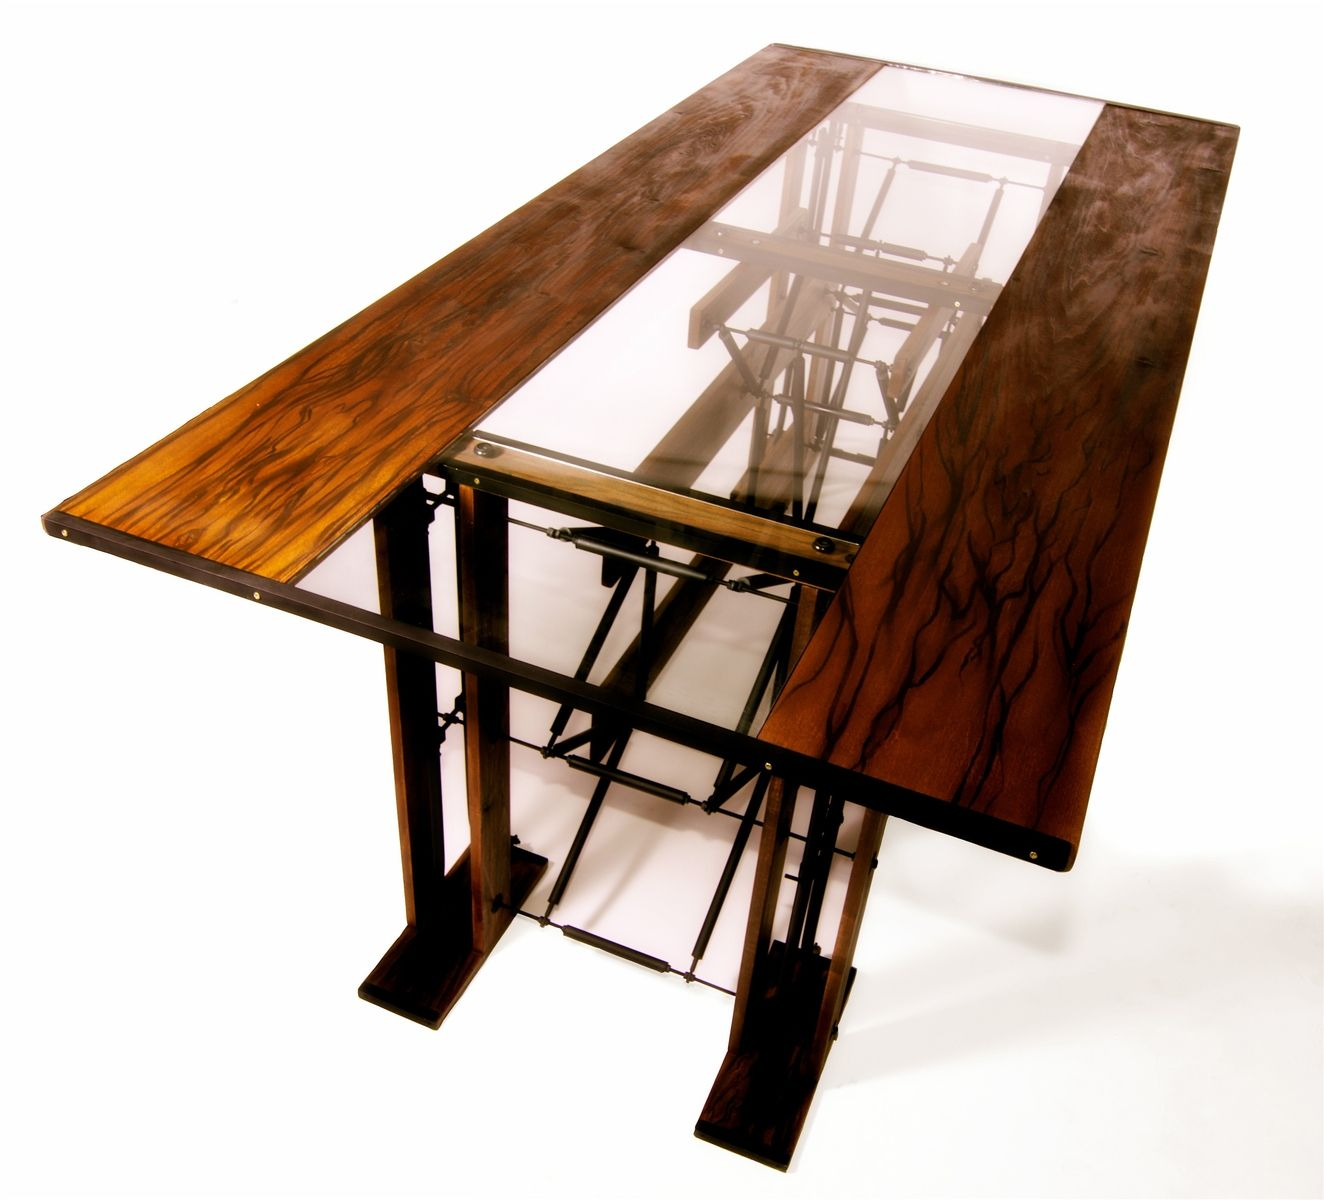 Hand made custom contemporary industrial eclectic dining for Wooden glass dining table designs